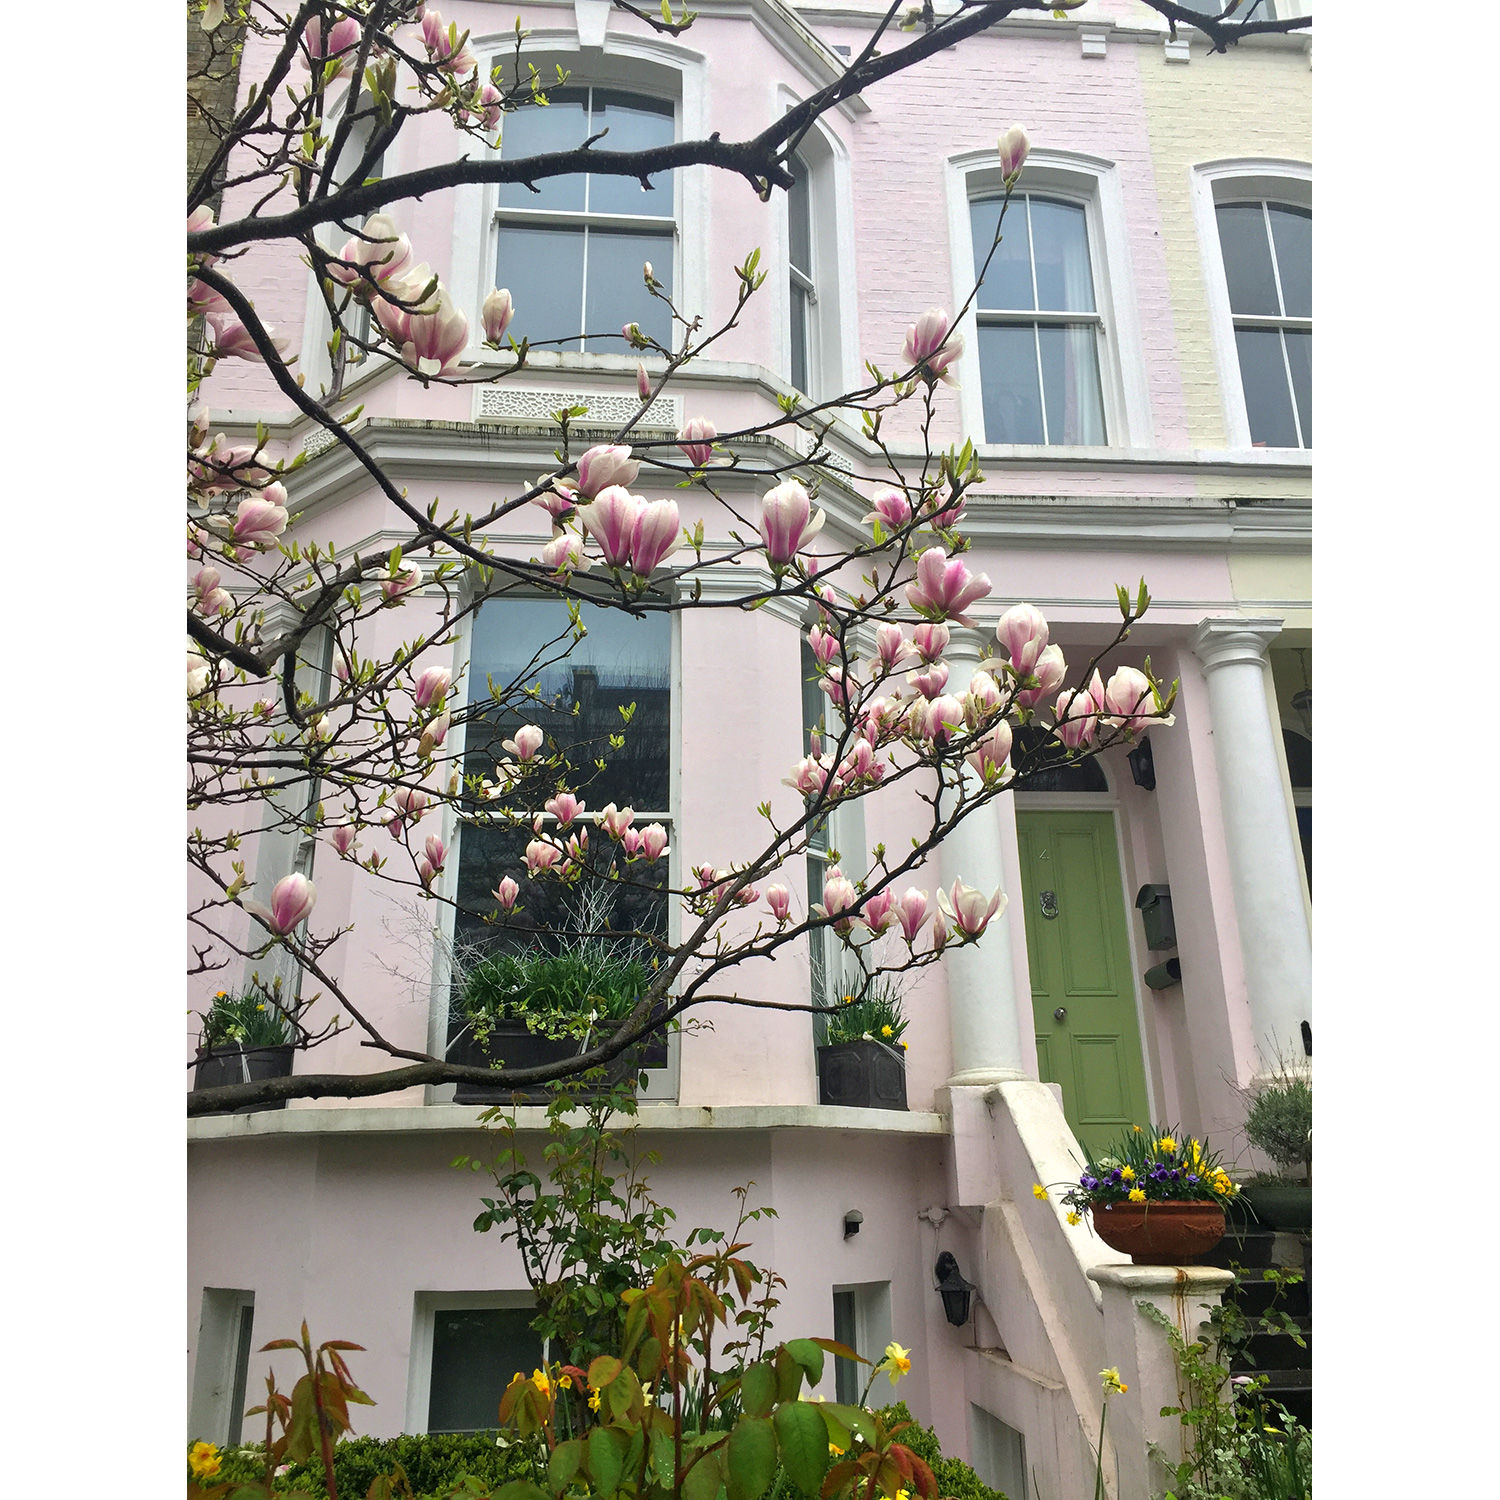 Spring transformations abound in Notting Hill 💕🌸💚🌿